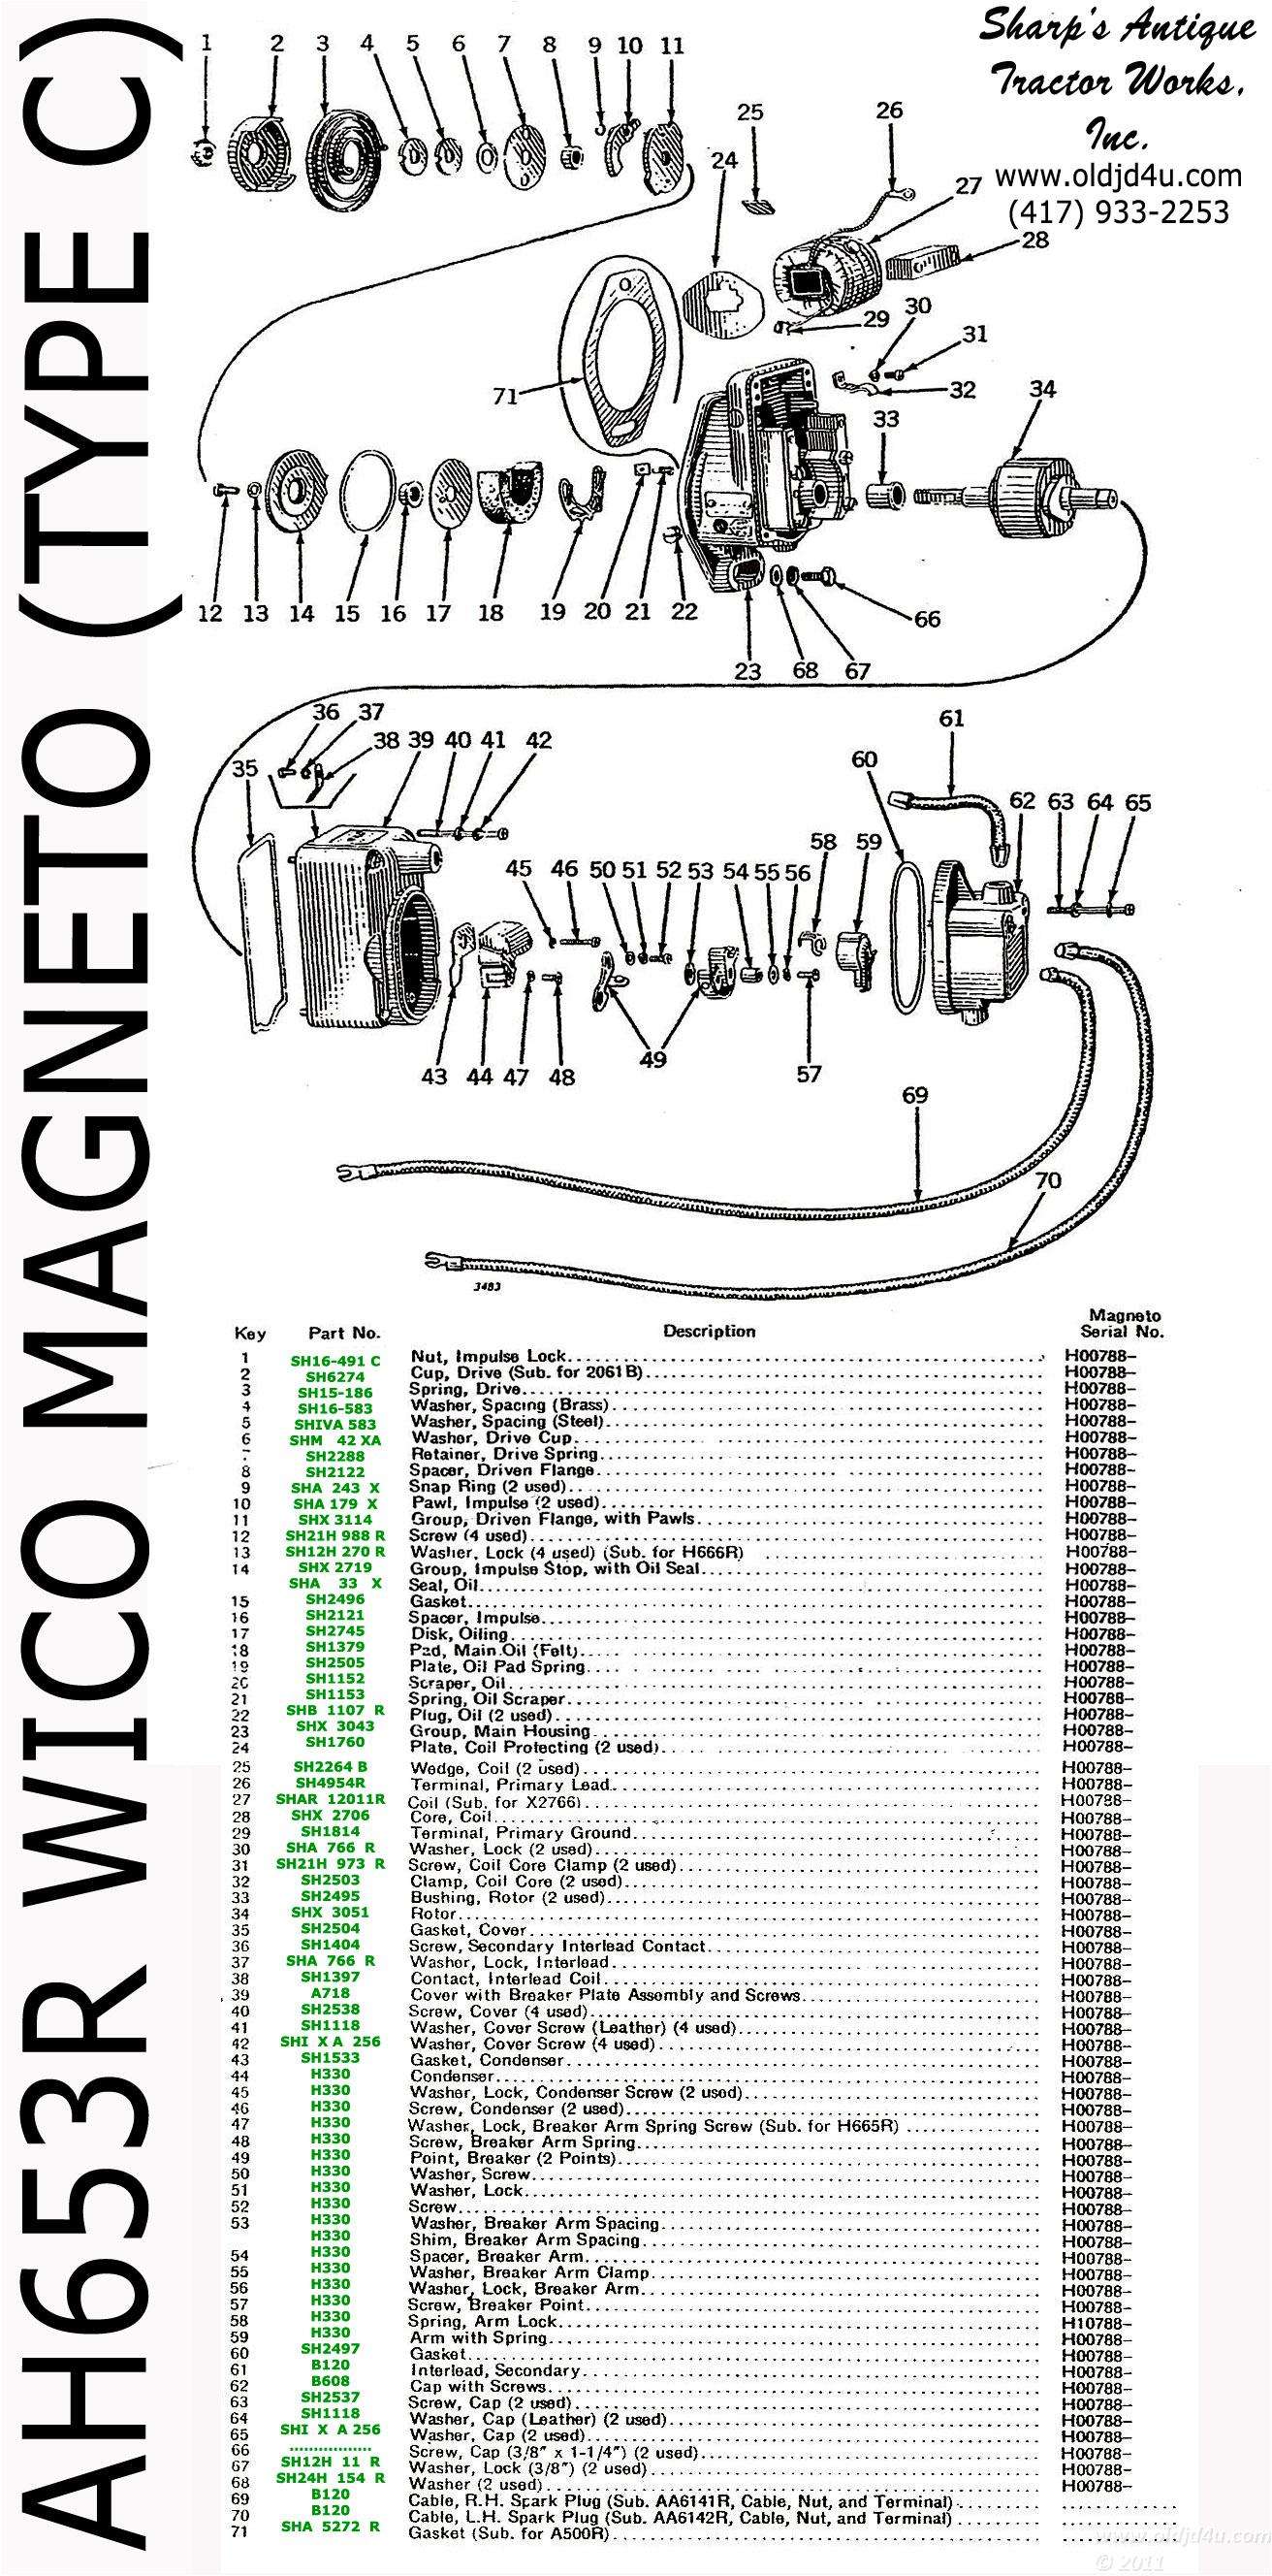 ford stereo wiring diagram model 4600